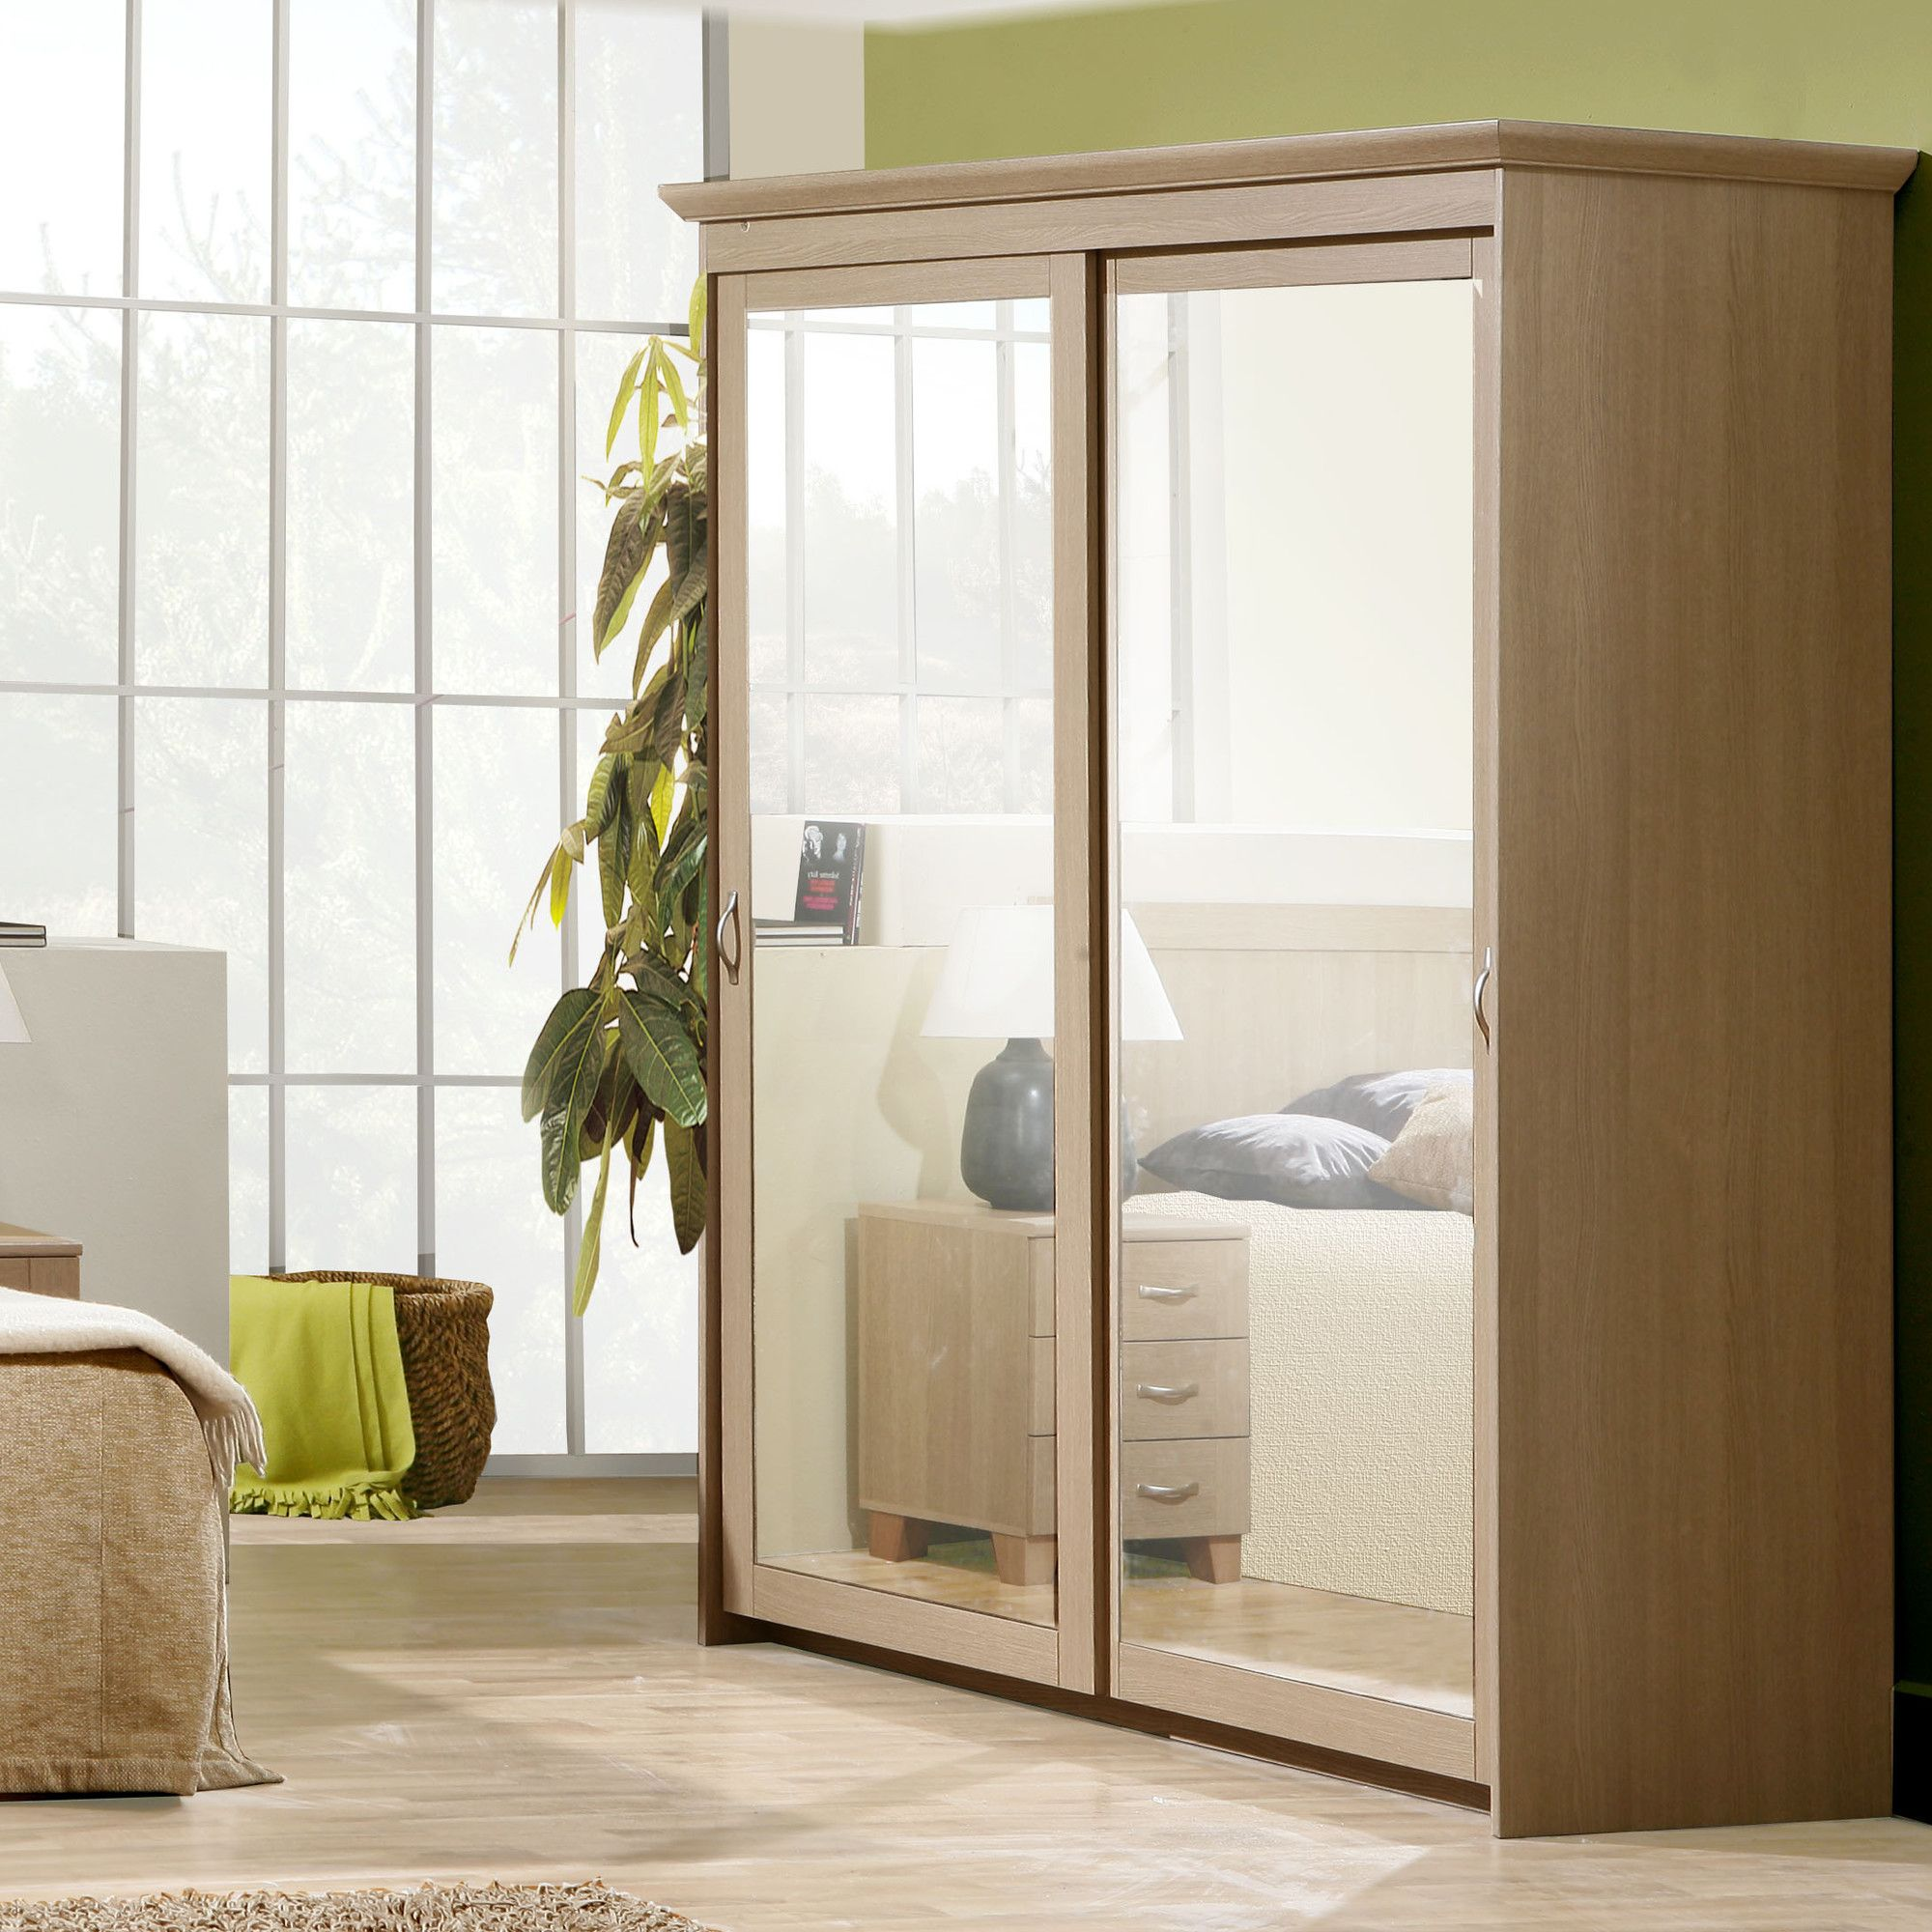 Ideal Furniture Rio Sliding Wardrobe in Yorkshire Oak at Tesco Direct